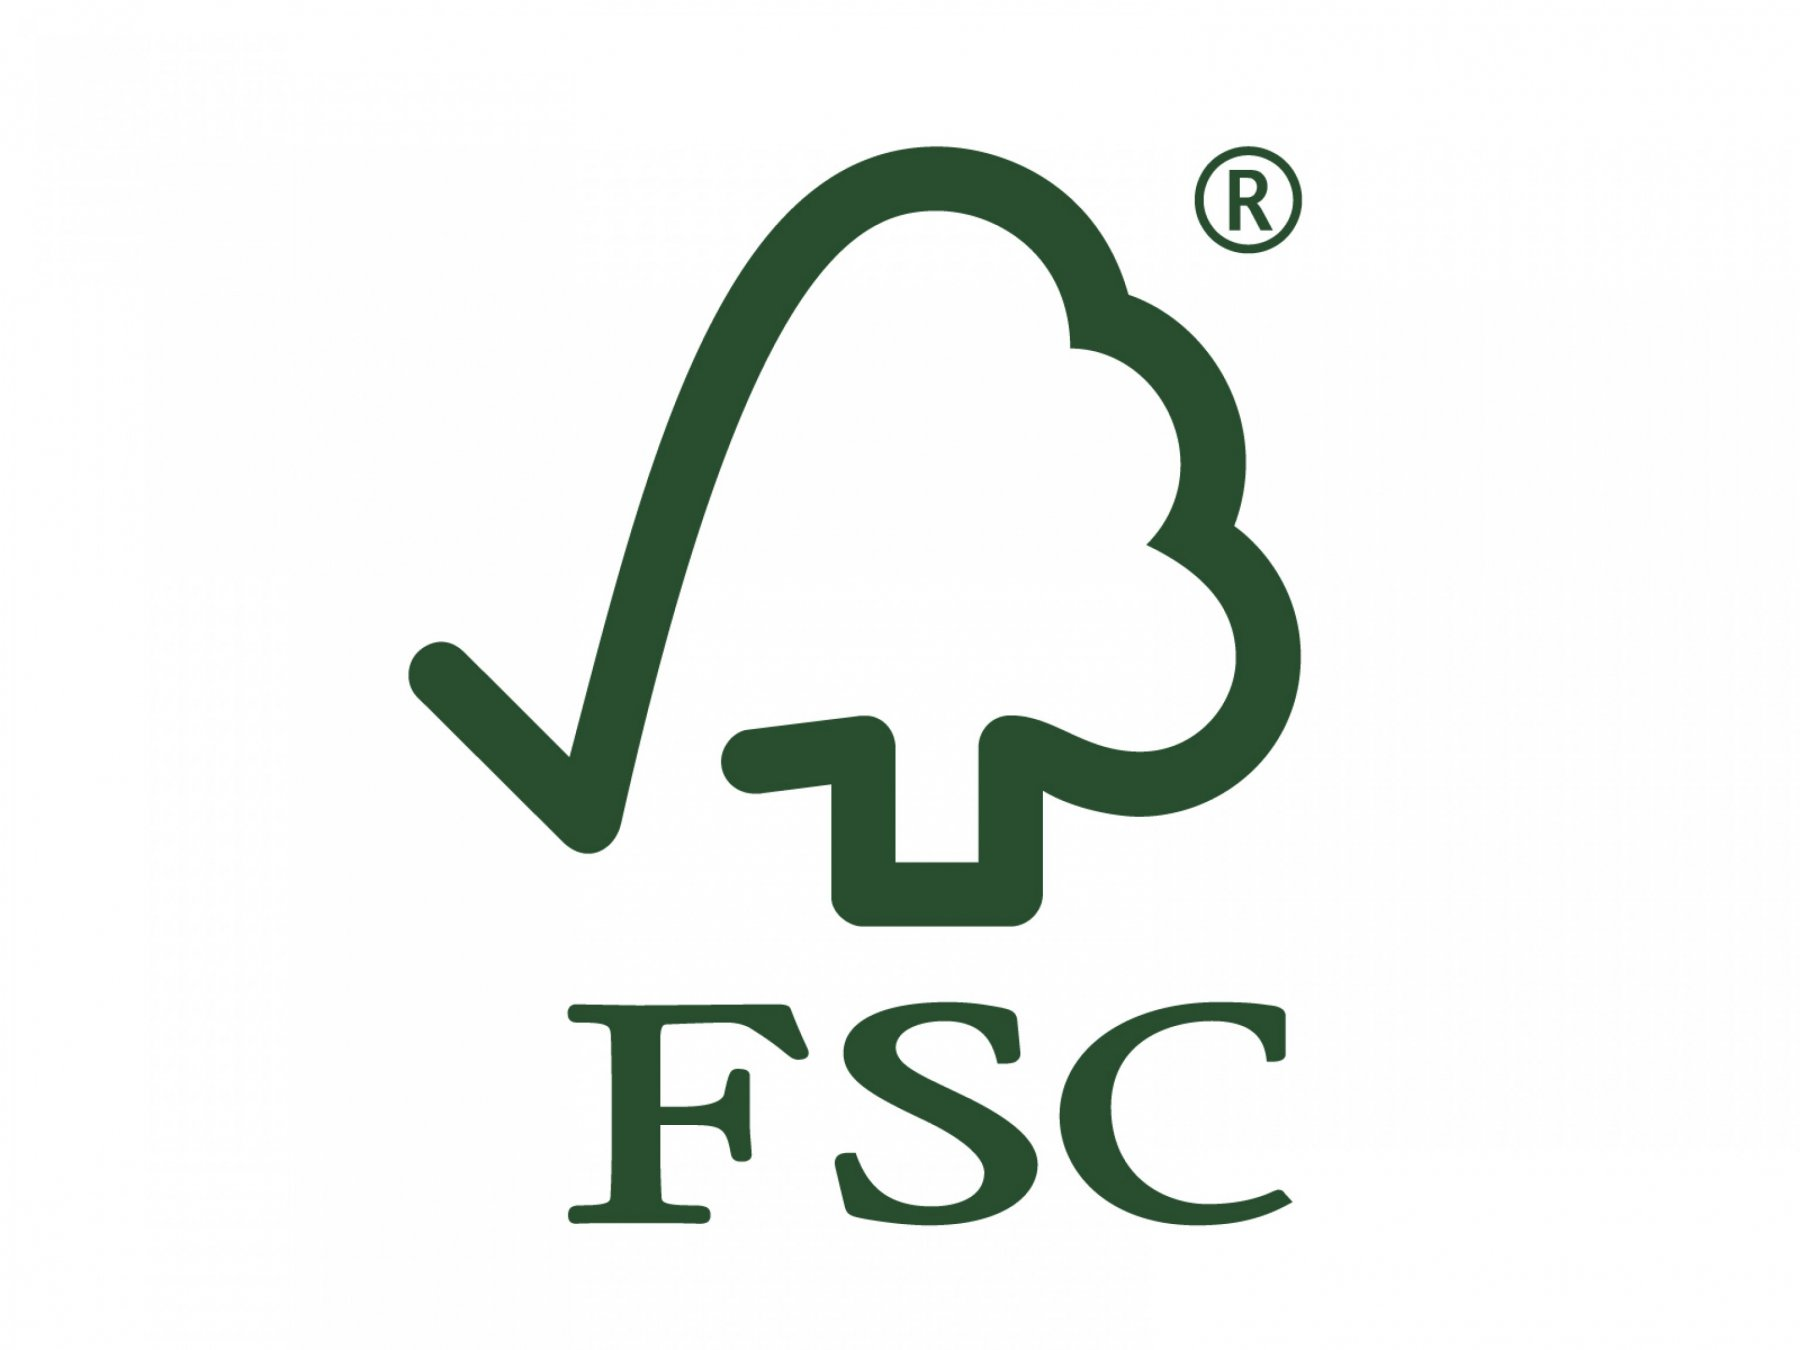 We encourage our clients to use FSC-certified or recycled paper for their printed projects, and encourage digital marketing strategies, when appropriate.